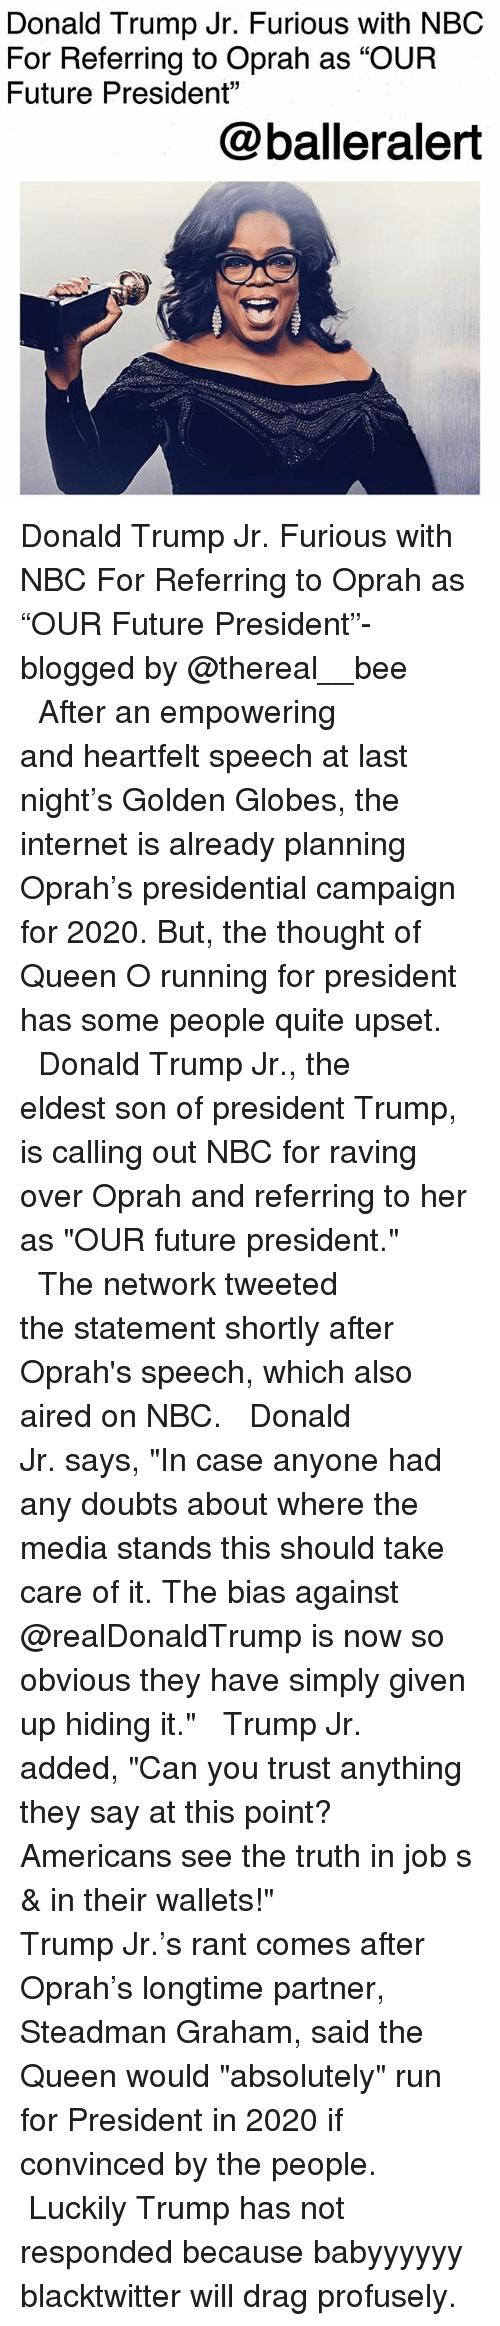 "Donald Trump, Future, and Golden Globes: Donald Trump Jr. Furious with NBC  For Referring to Oprah as ""OUR  Future President""  @balleralert Donald Trump Jr. Furious with NBC For Referring to Oprah as ""OUR Future President""-blogged by @thereal__bee ⠀⠀⠀⠀⠀⠀⠀⠀⠀ ⠀⠀ After an empowering and heartfelt speech at last night's Golden Globes, the internet is already planning Oprah's presidential campaign for 2020. But, the thought of Queen O running for president has some people quite upset. ⠀⠀⠀⠀⠀⠀⠀⠀⠀ ⠀⠀ Donald Trump Jr., the eldest son of president Trump, is calling out NBC for raving over Oprah and referring to her as ""OUR future president."" ⠀⠀⠀⠀⠀⠀⠀⠀⠀ ⠀⠀ The network tweeted the statement shortly after Oprah's speech, which also aired on NBC. ⠀⠀⠀⠀⠀⠀⠀⠀⠀ ⠀⠀ Donald Jr. says, ""In case anyone had any doubts about where the media stands this should take care of it. The bias against @realDonaldTrump is now so obvious they have simply given up hiding it."" ⠀⠀⠀⠀⠀⠀⠀⠀⠀ ⠀⠀ Trump Jr. added, ""Can you trust anything they say at this point? Americans see the truth in job s & in their wallets!"" ⠀⠀⠀⠀⠀⠀⠀⠀⠀ ⠀⠀ Trump Jr.'s rant comes after Oprah's longtime partner, Steadman Graham, said the Queen would ""absolutely"" run for President in 2020 if convinced by the people. ⠀⠀⠀⠀⠀⠀⠀⠀⠀ ⠀⠀ Luckily Trump has not responded because babyyyyyy blacktwitter will drag profusely."